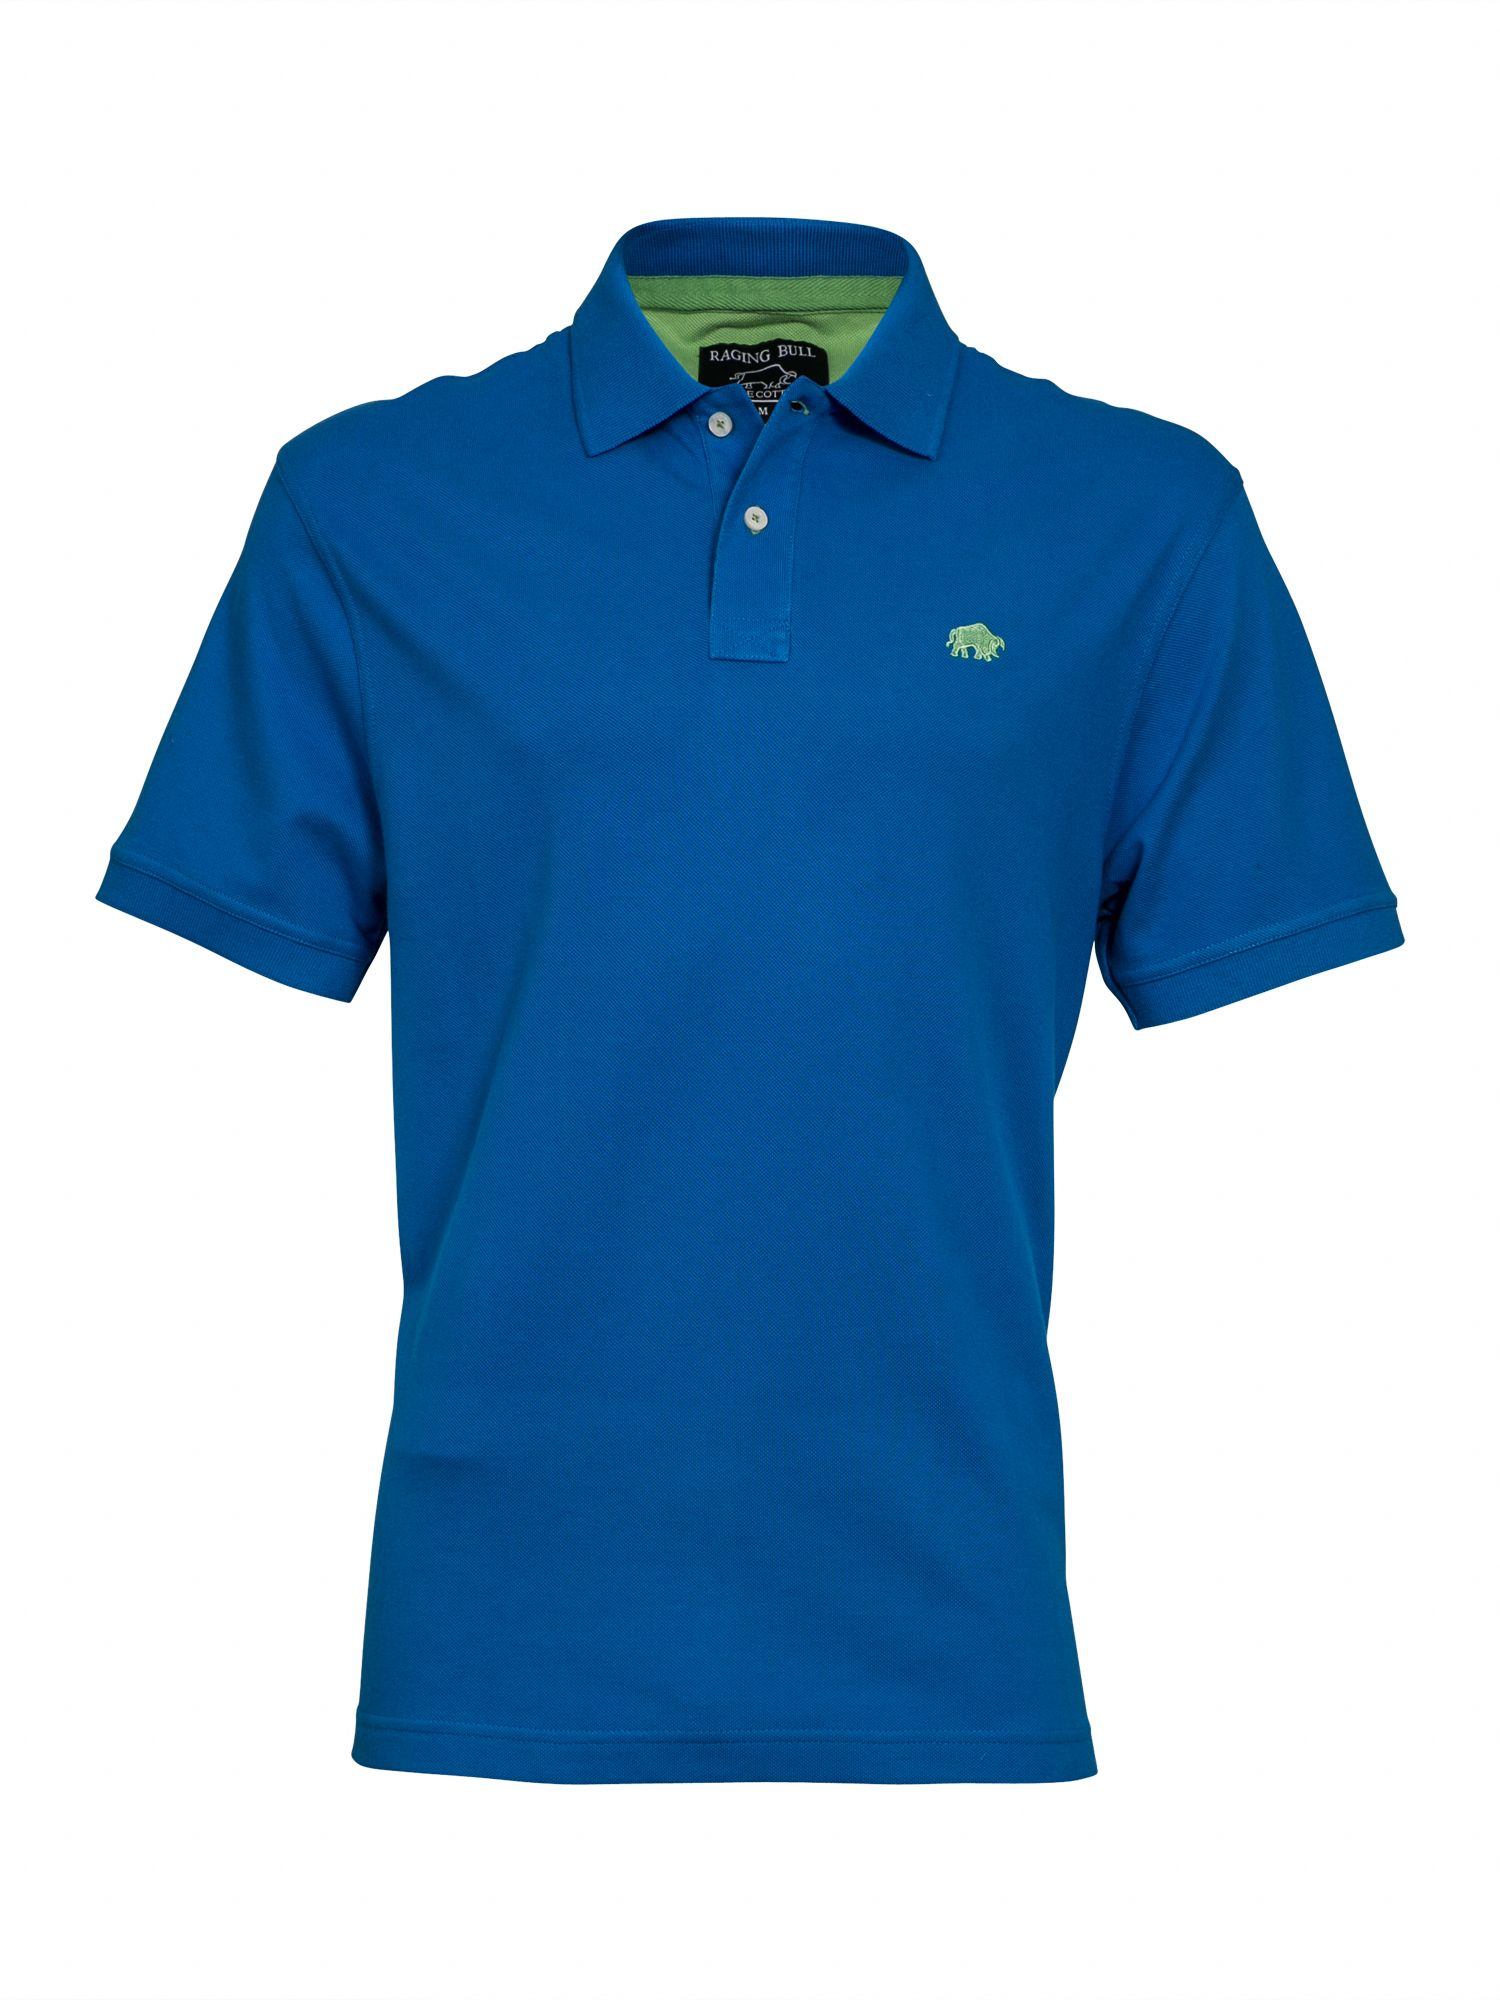 Men's Raging Bull New Signature Polo Shirt, Cobalt